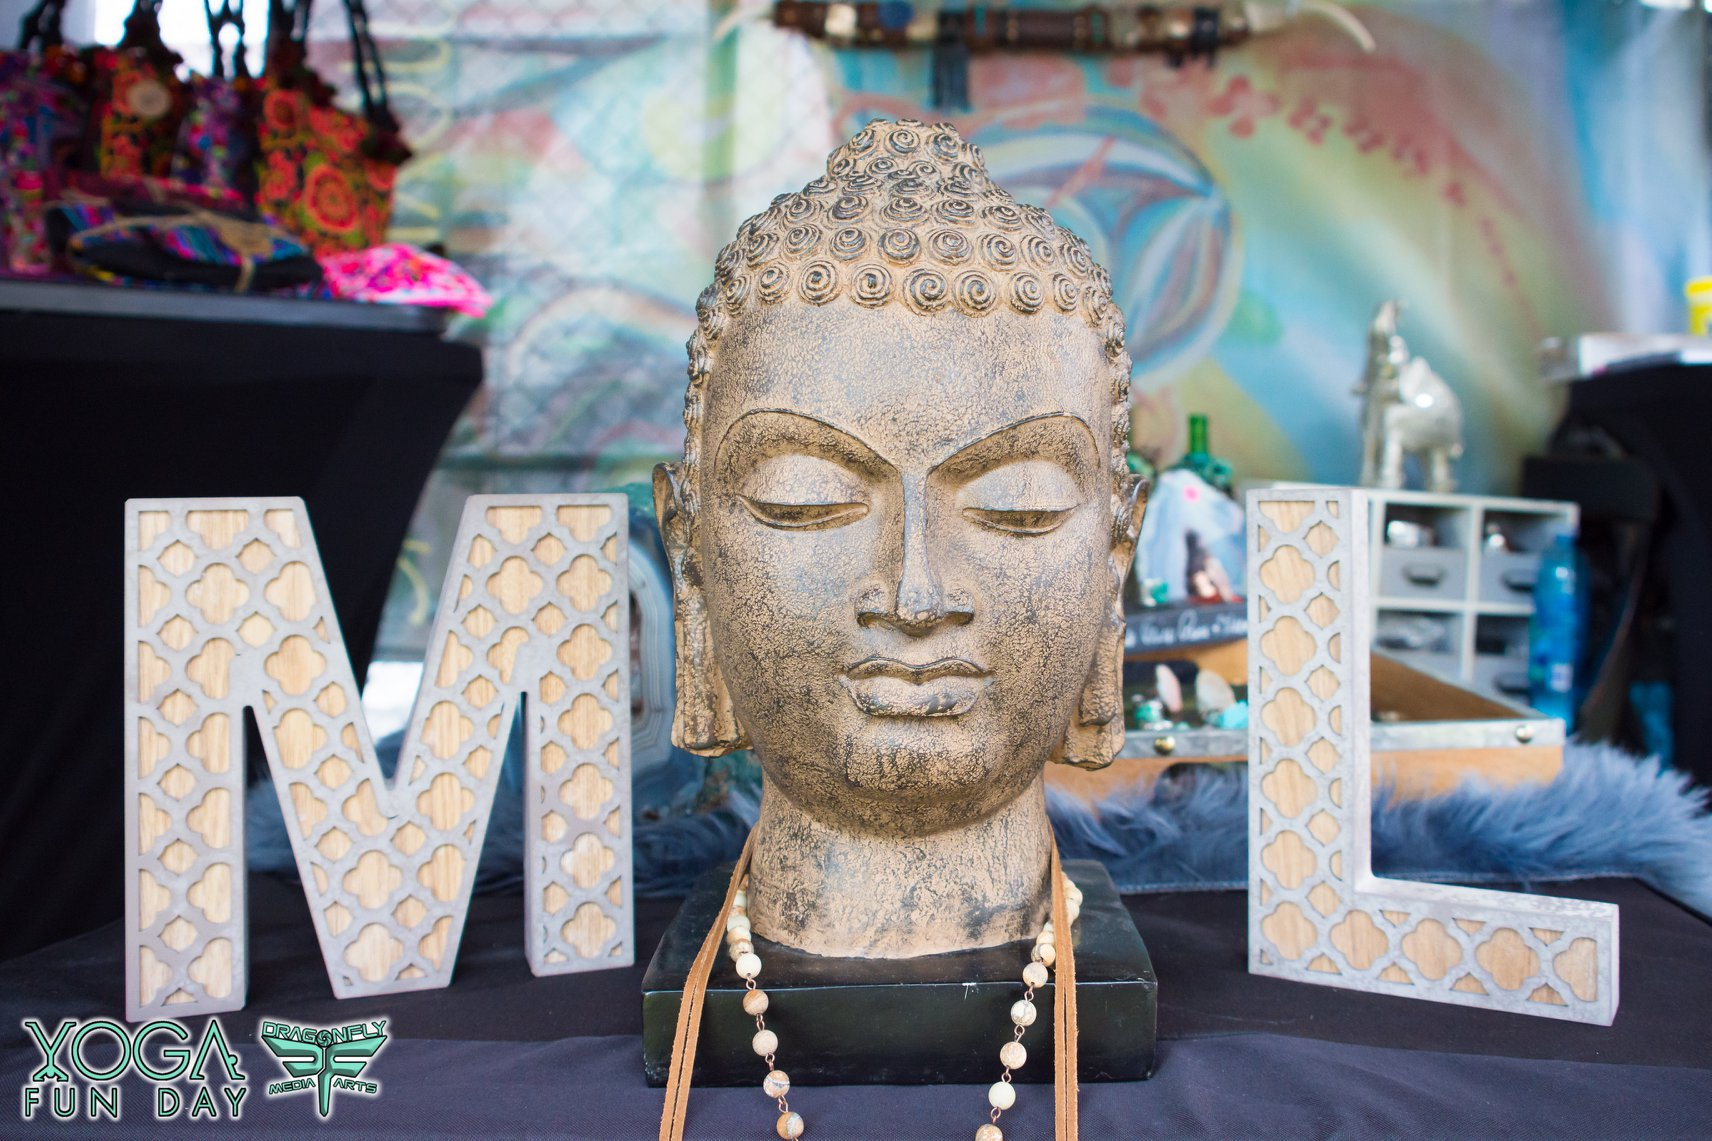 Yoga Fun Day Miami Yoga Festival Vendor Opportunities